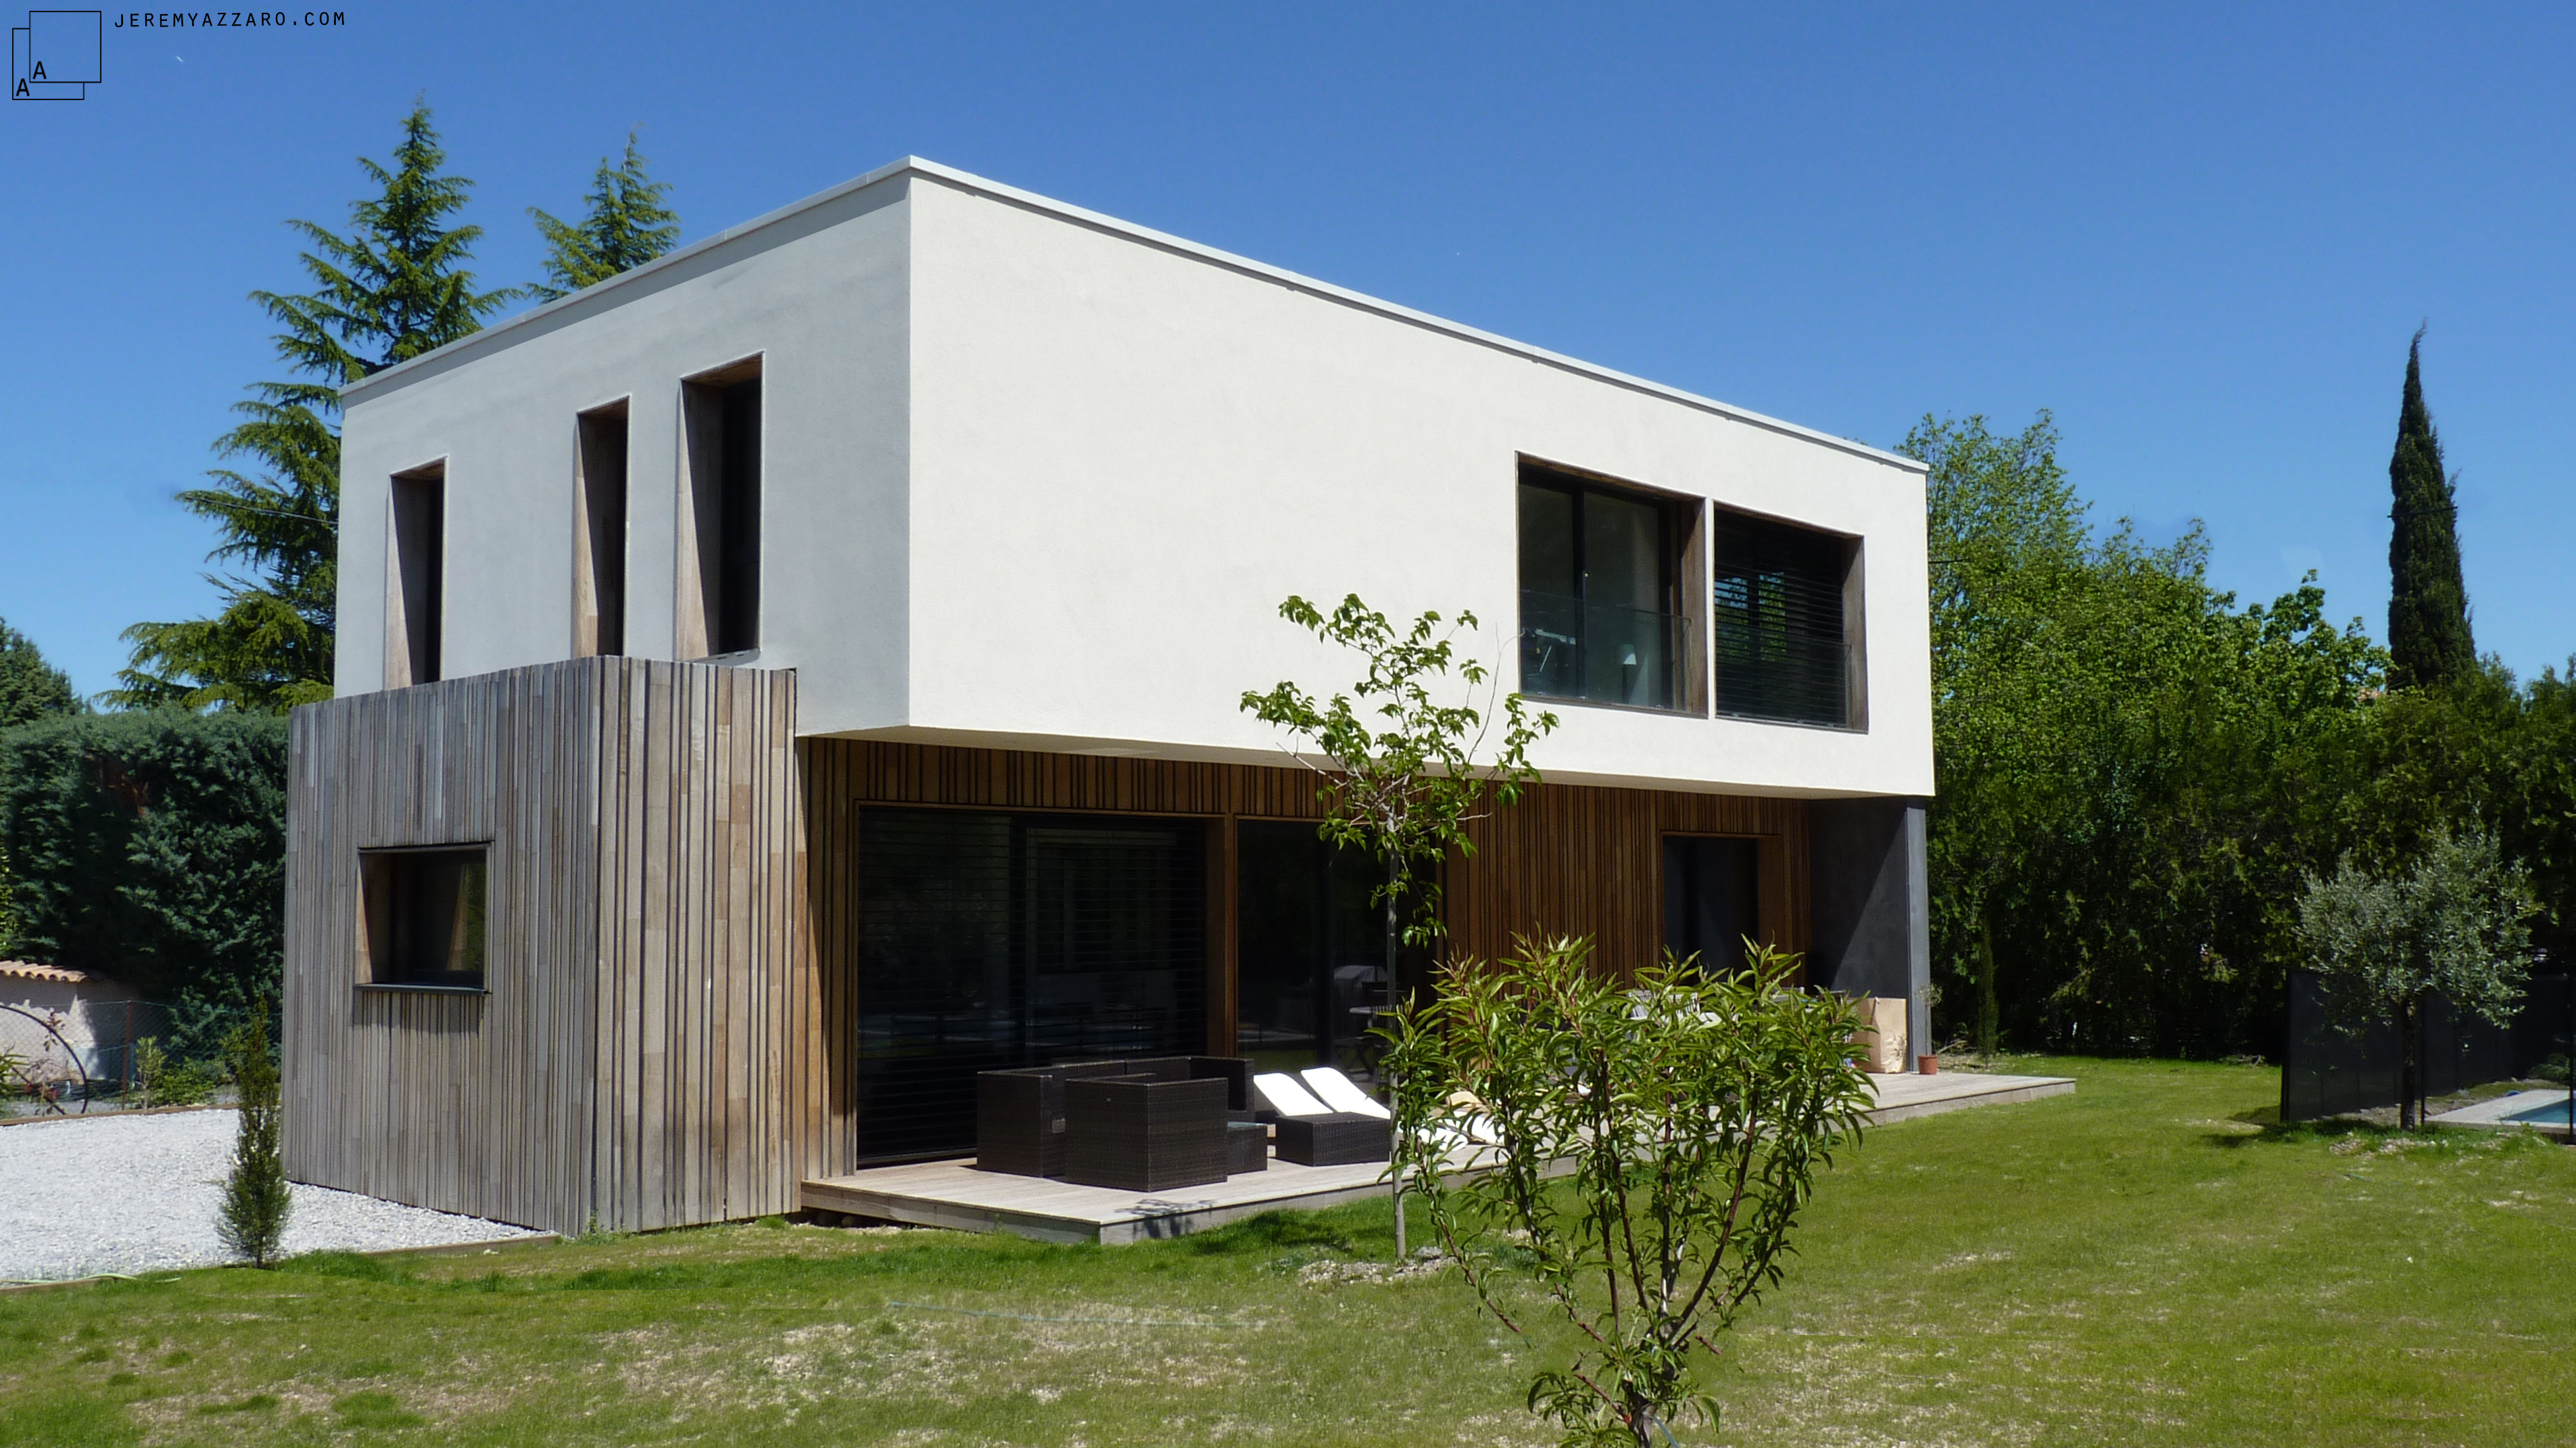 Conception d'une maison contemporaine « à travers champs »